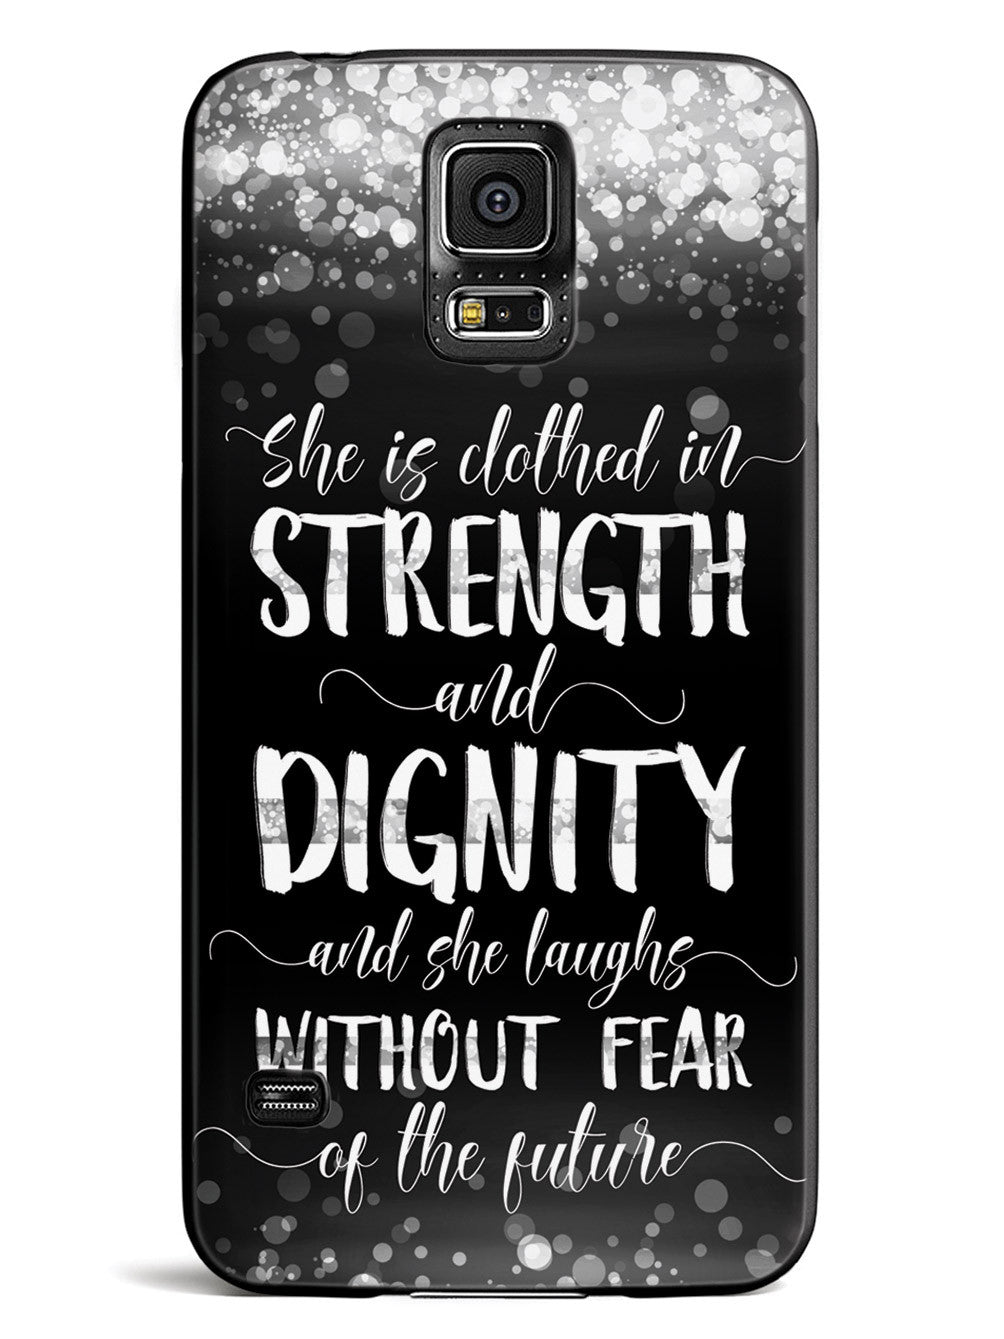 She Is Clothed in Strength and Dignity - Thin White Line Case